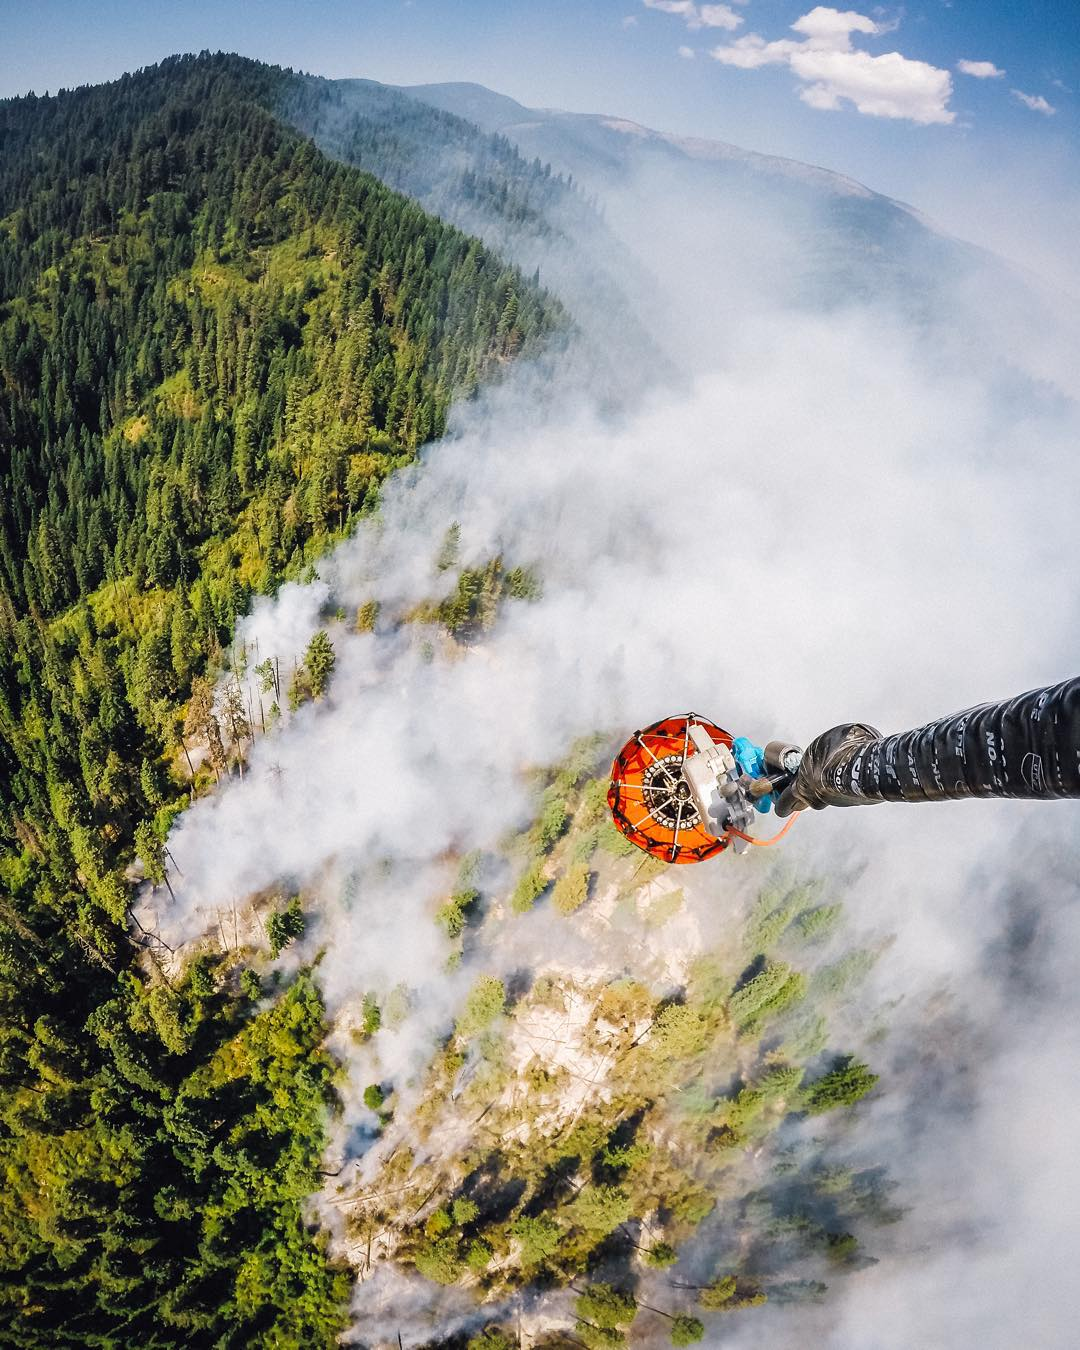 Photo of the Day! @jakeniece and his helicopter crew provide a unique perspective of firefighting. His crew was in the midst of a bucket drop mission over Nez Perce - Clearwater National Forest in Idaho. Your job take you off the beaten path? Share...